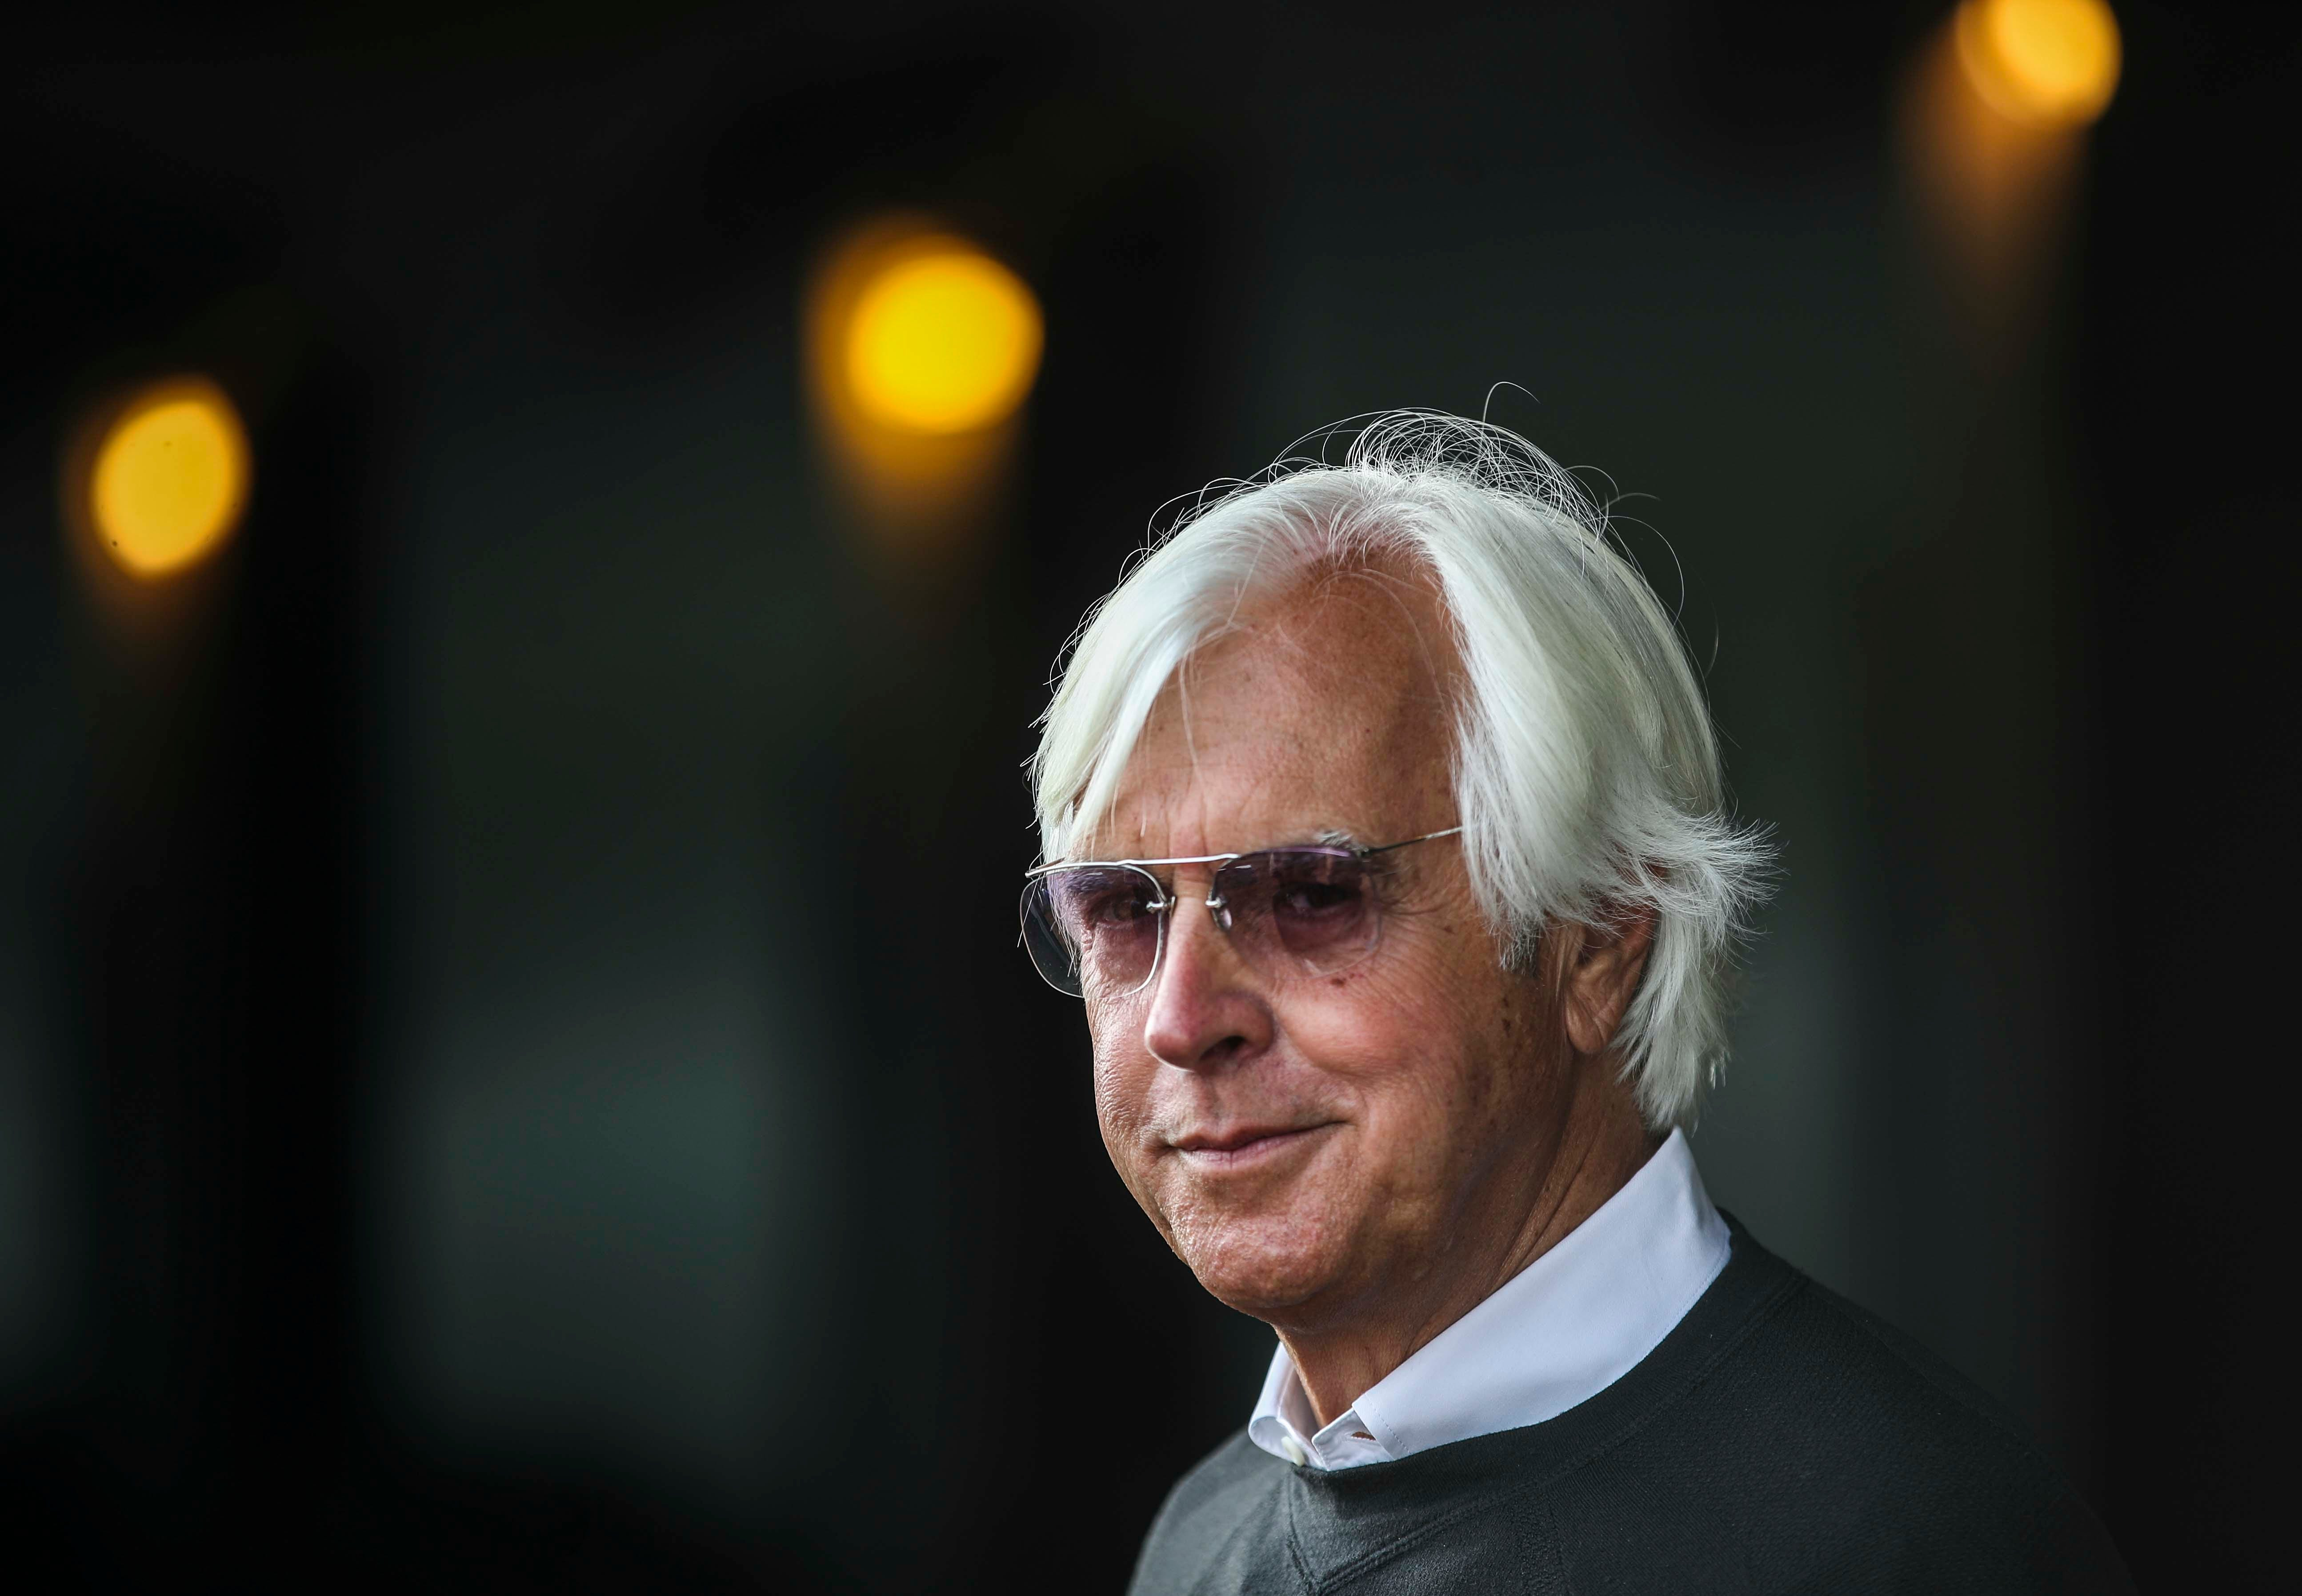 Bob Baffert says he s hearing Kentucky Derby could move to  maybe June or September